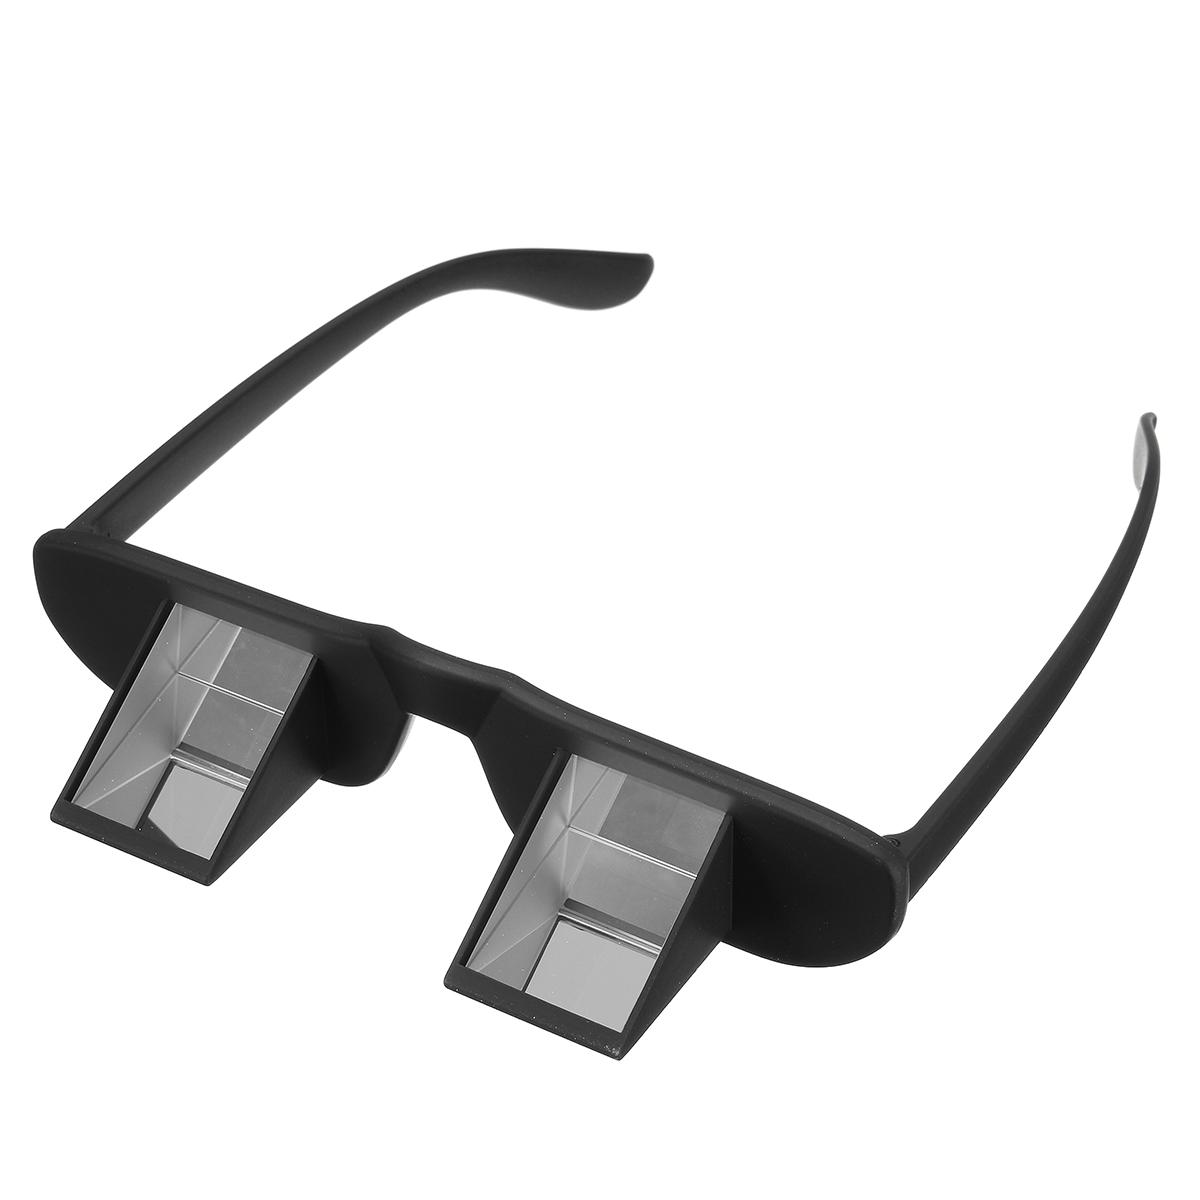 ea2ad8921388 Outdoor Climbing Glasses Lazy Horizontal Prisma Refractivas Goggles  Spectacles Mountaineering Glasses Camping Hiking Eyewear Orienteering  Compasses ...